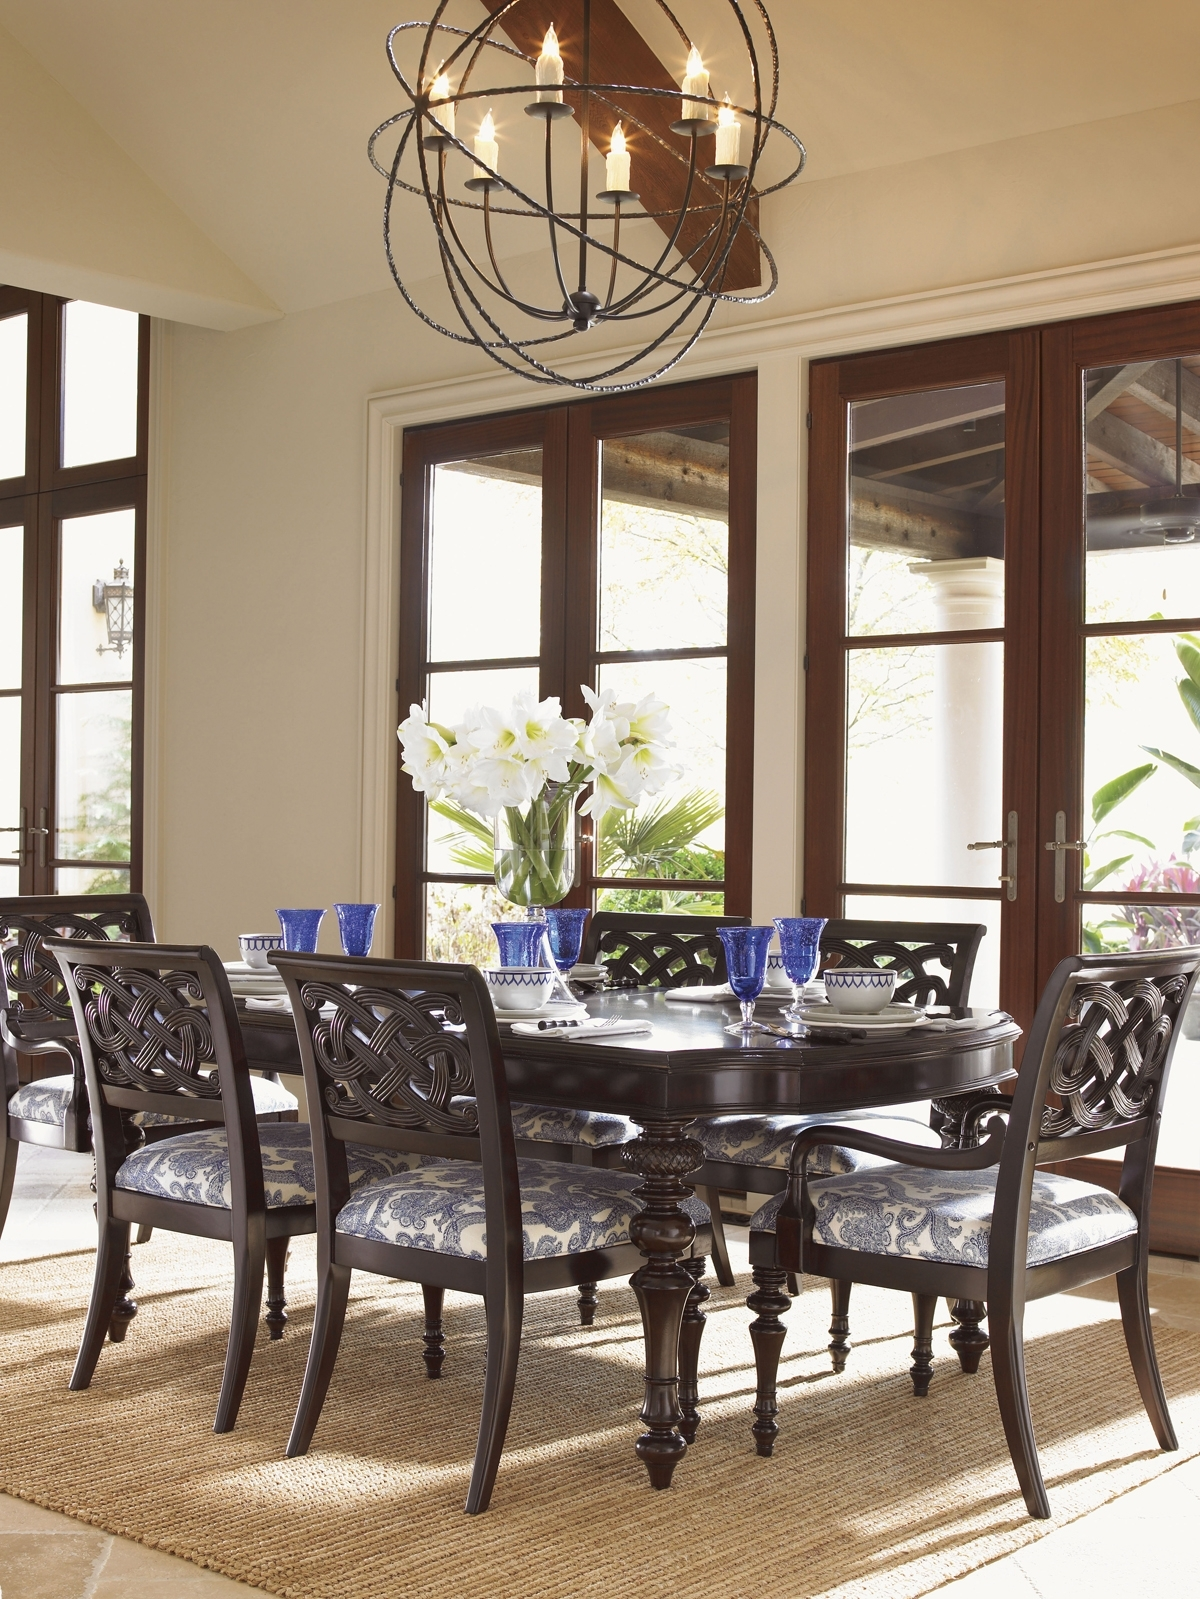 Lexington Home Brands Throughout Widely Used Royal Dining Tables (View 15 of 25)